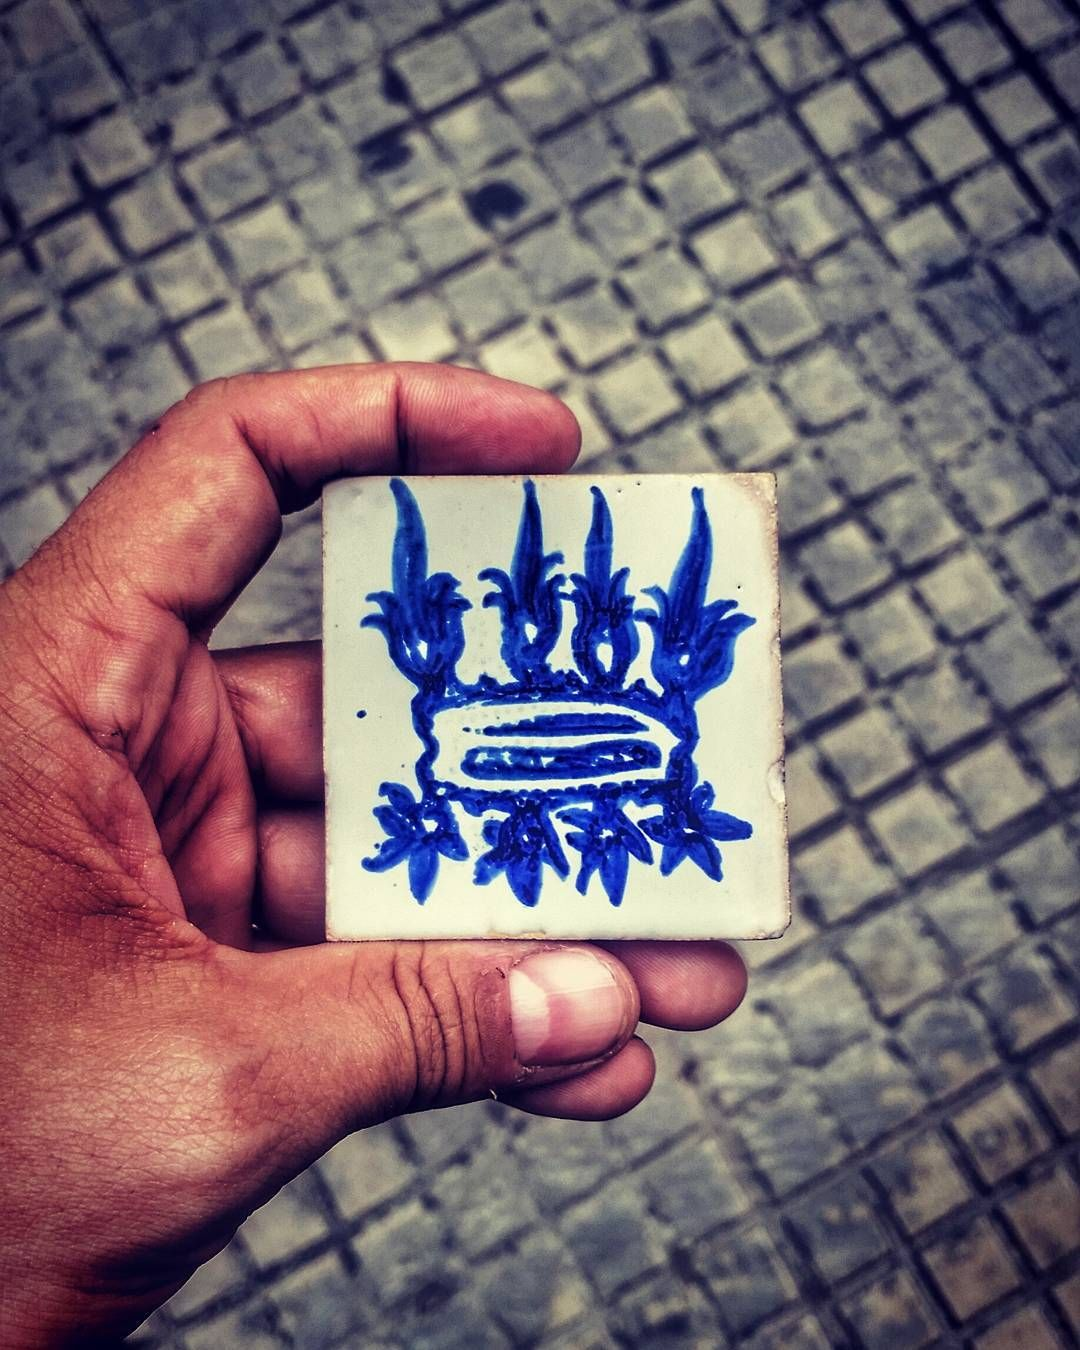 My journey into the world of the #Borgias started with this tile... It led me to the Ducal palace of #Gandia the home of the Borgias for 3 centuries... Can you guess what the symbol on the tile represents?  #ValenciaChallenge #ValenciaTurisme